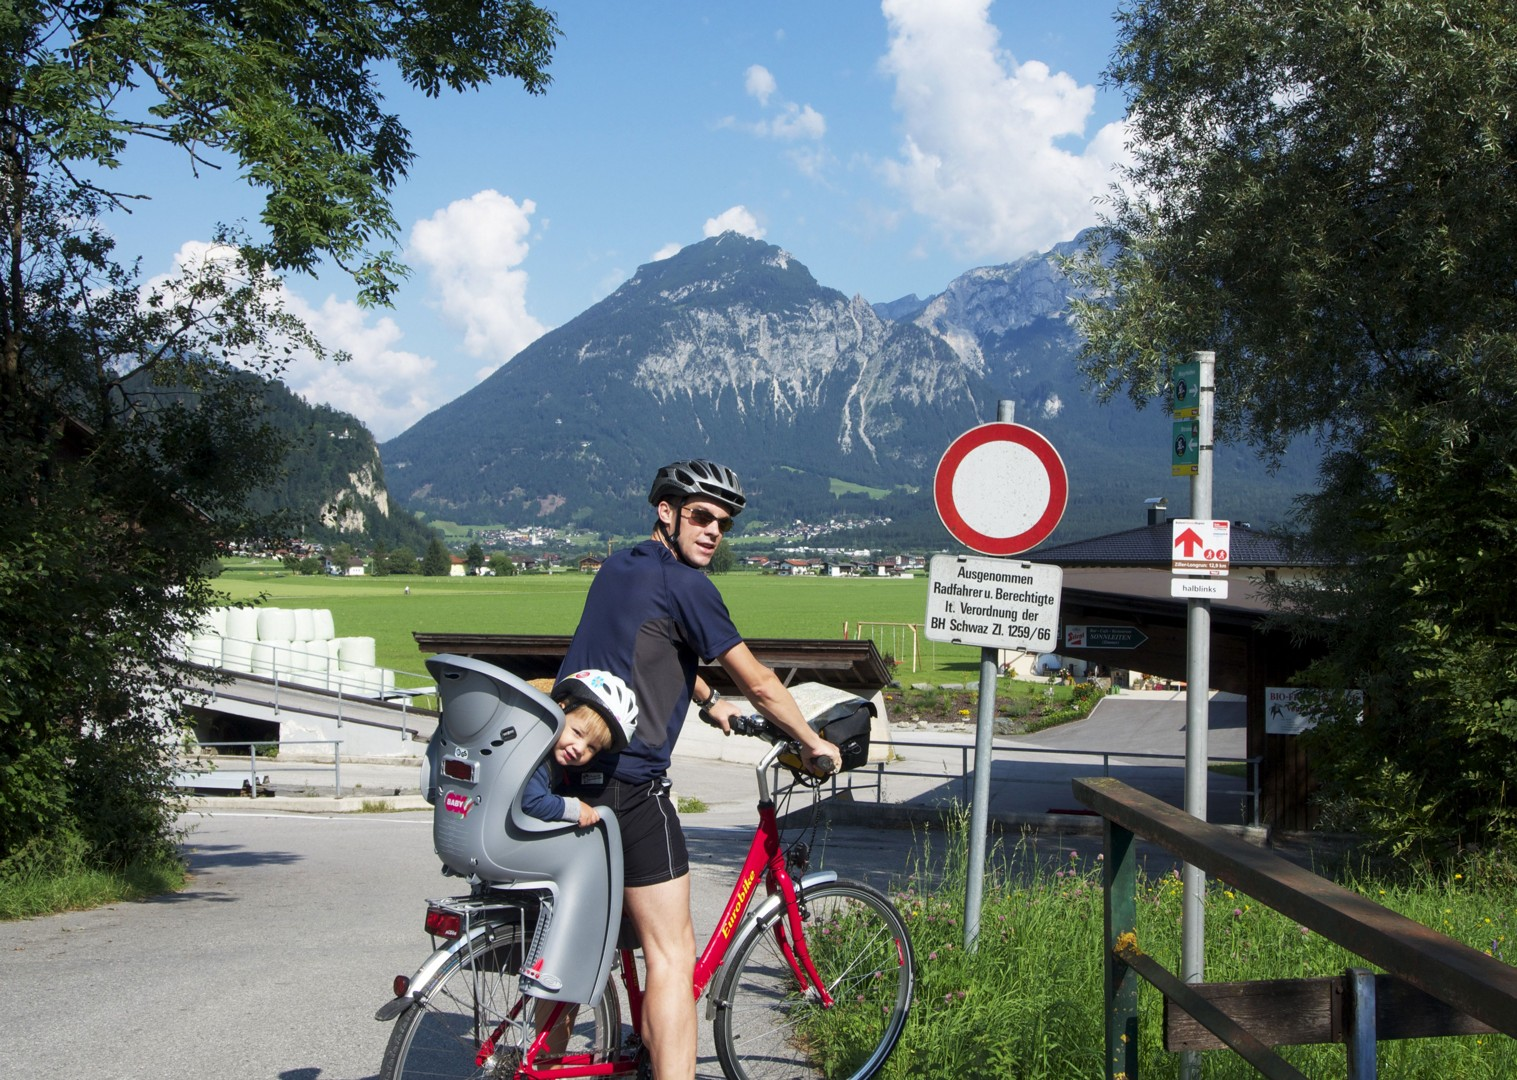 mountains-family-cycling-holiday-austria-self-guided.jpg - Austria - Tyrolean Valleys - Family Cycling